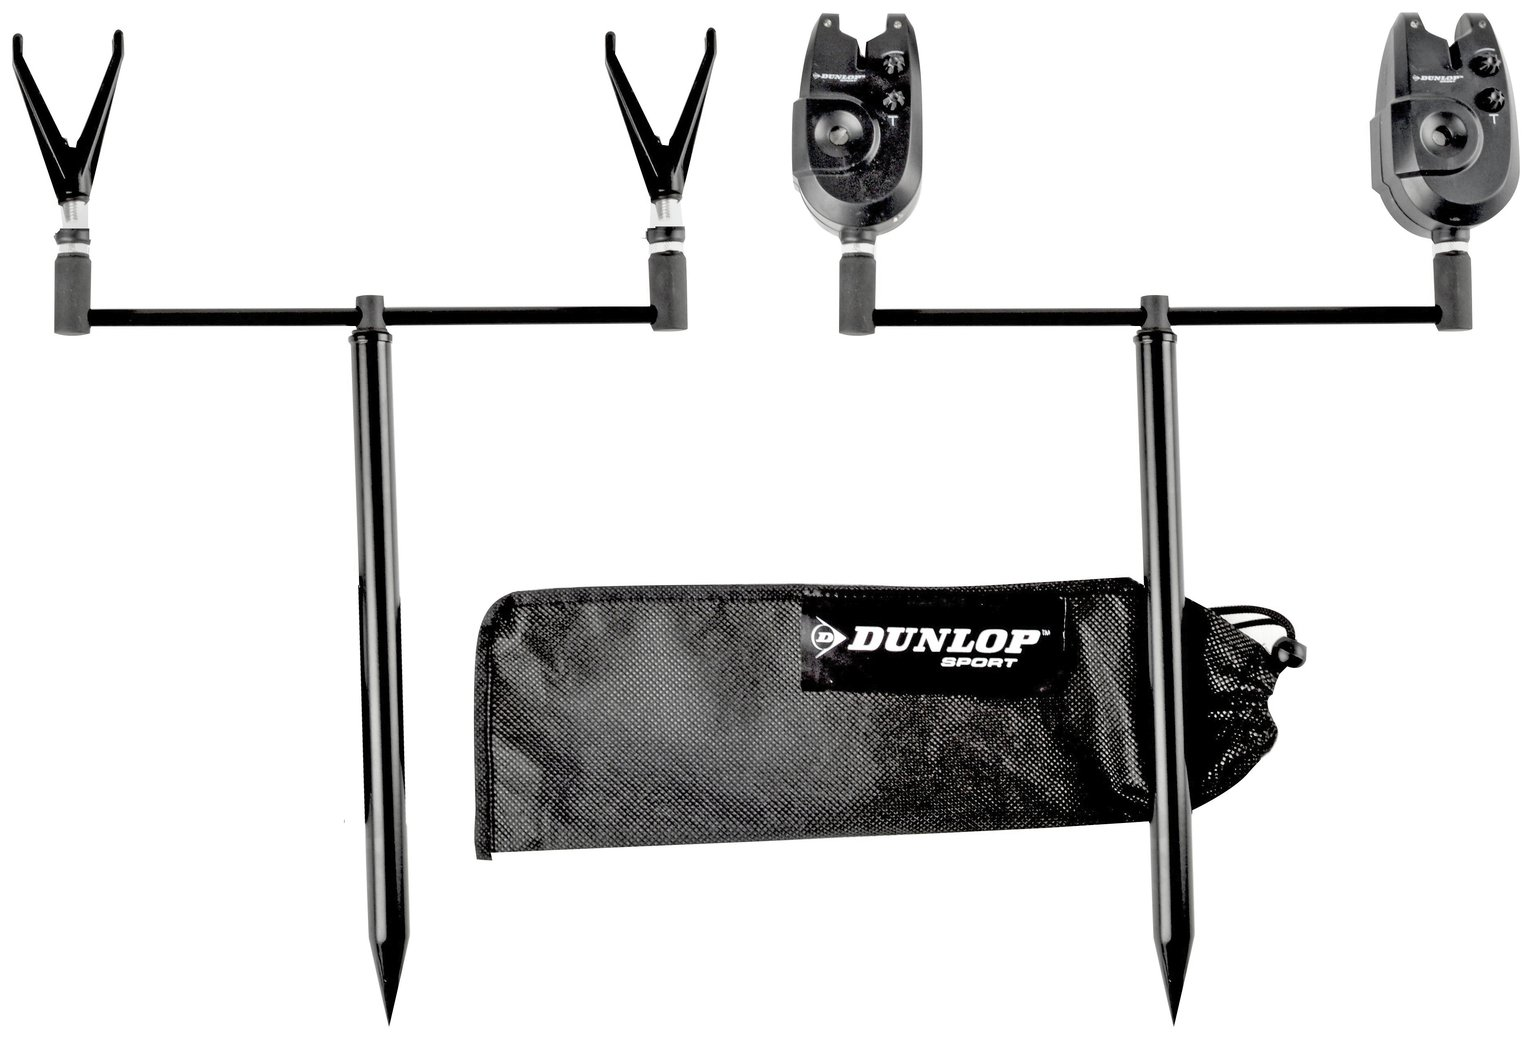 Dunlop Carp Rod Bankside Set with Alarms from Dunlop